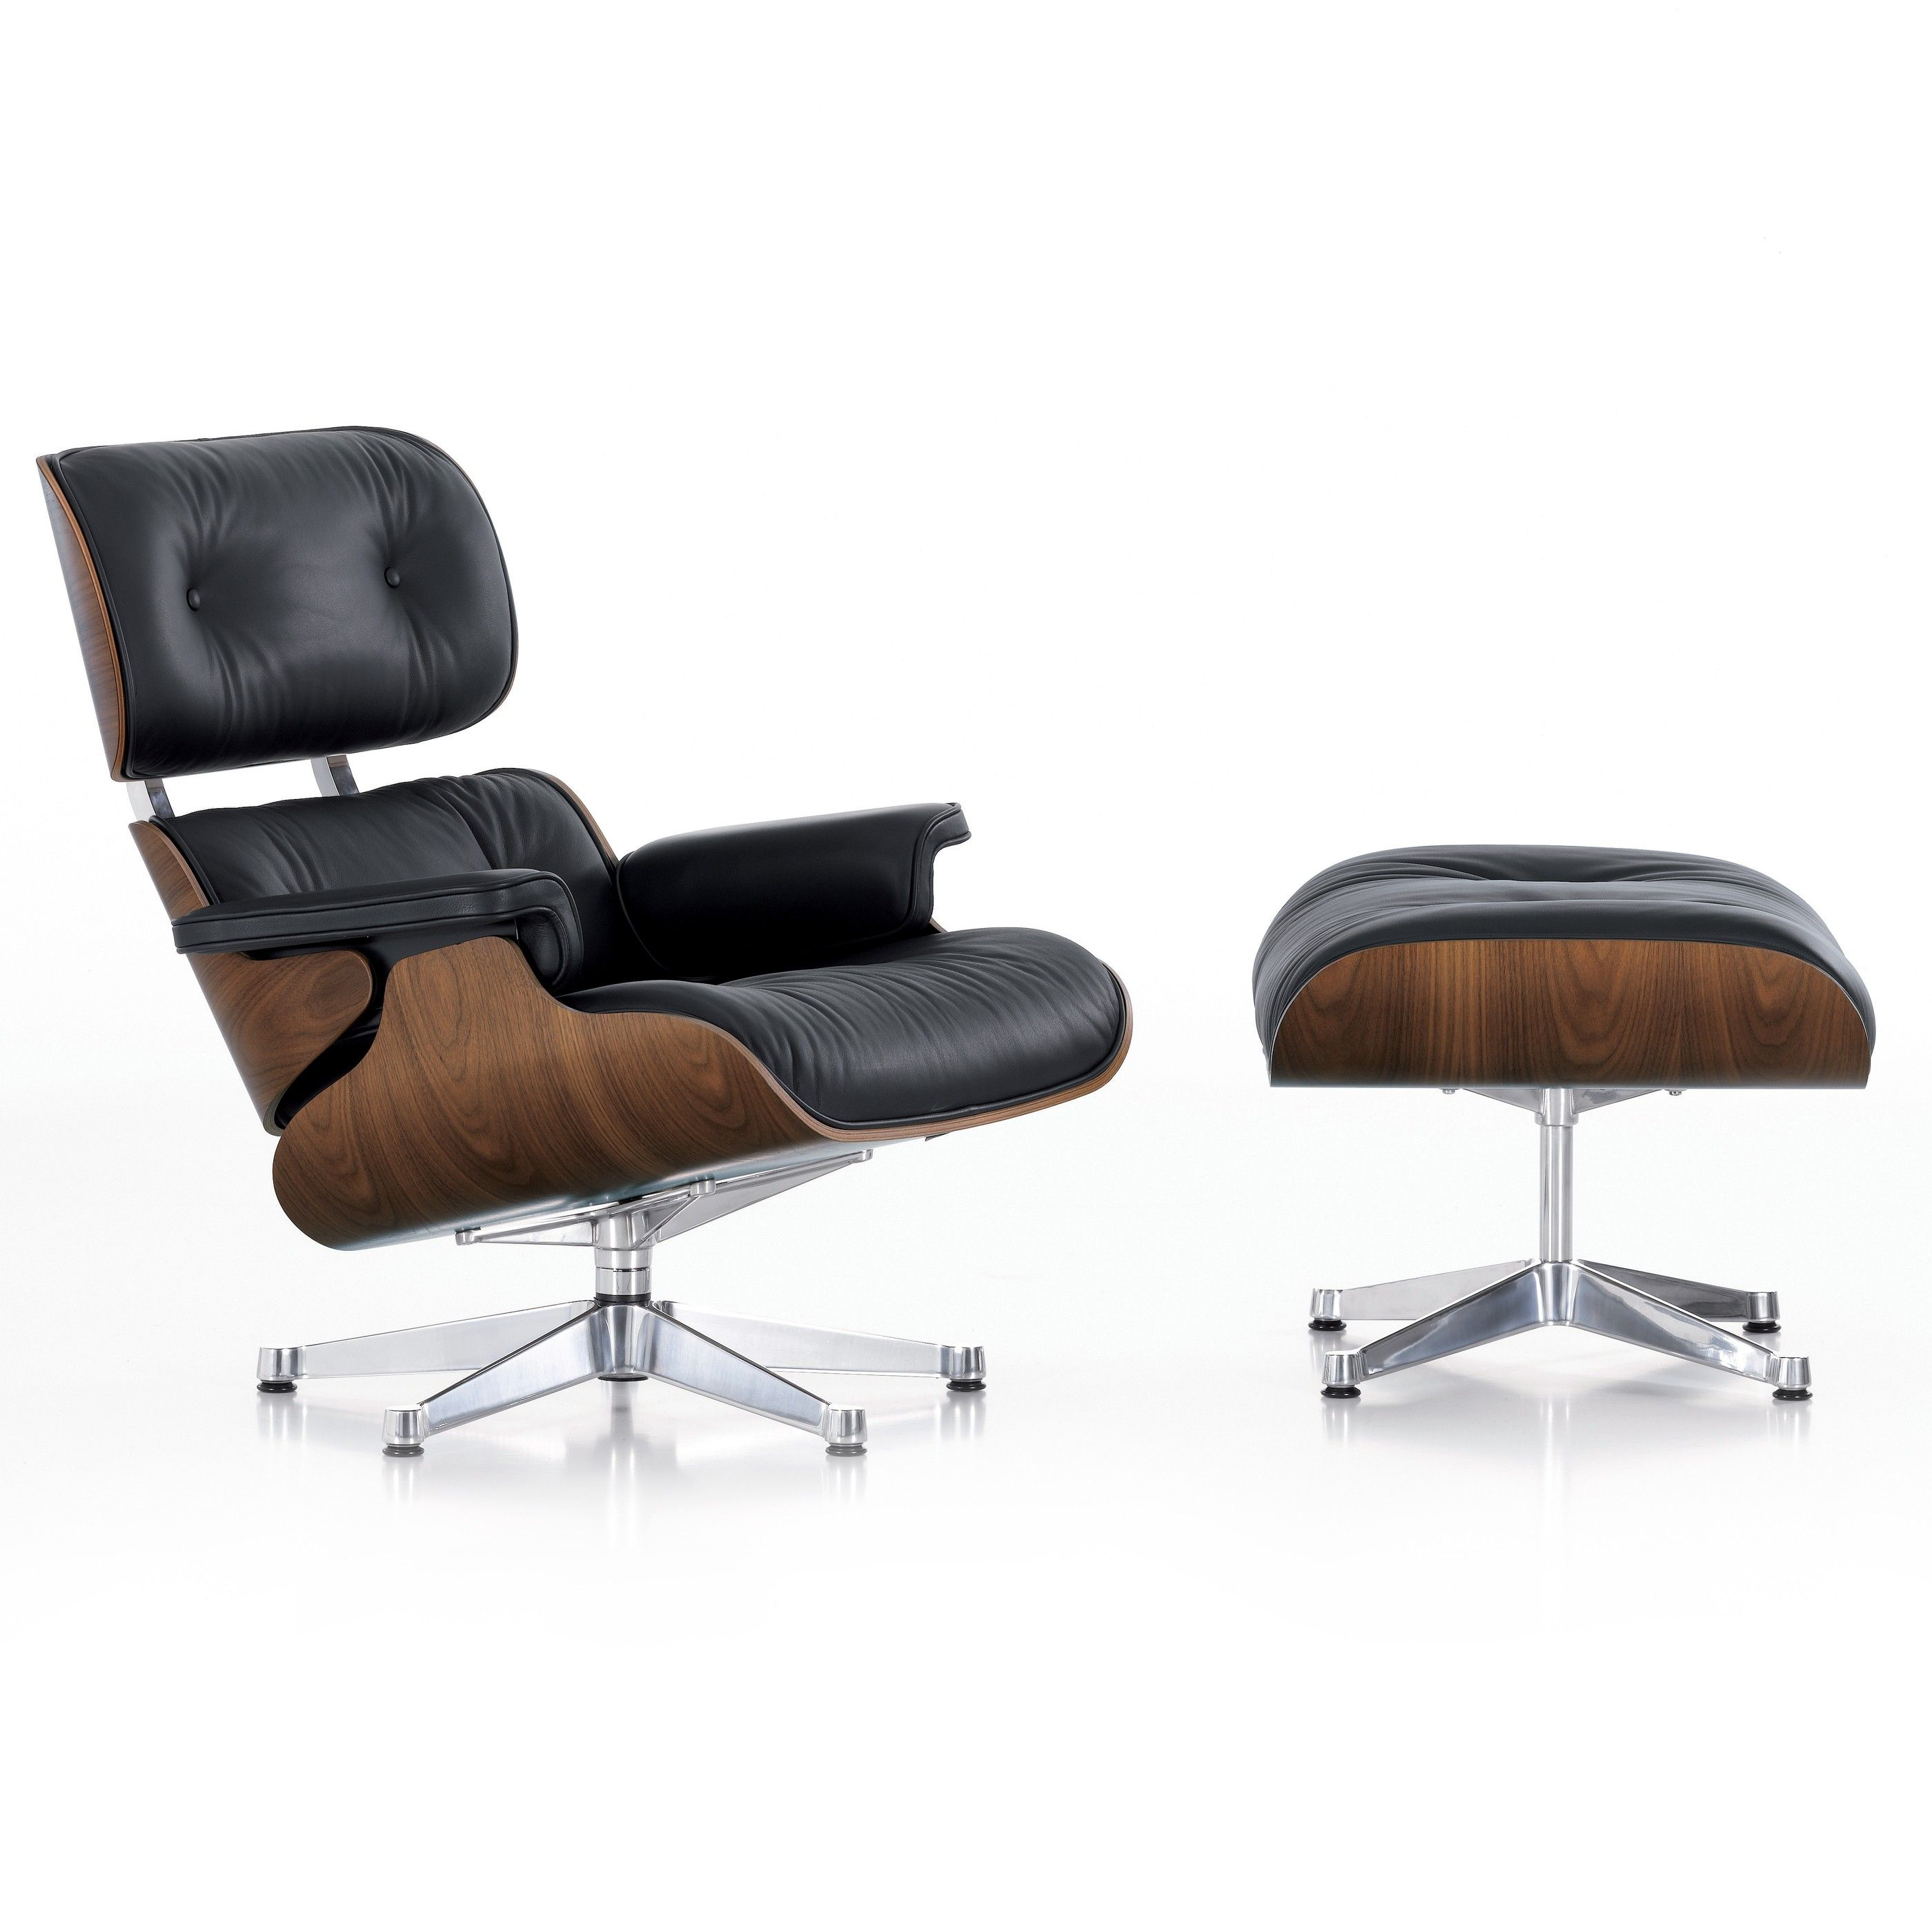 Vitra Eames Sessel Vitra Eames Lounge Chair Mit Ottoman Sessel Neue Maße